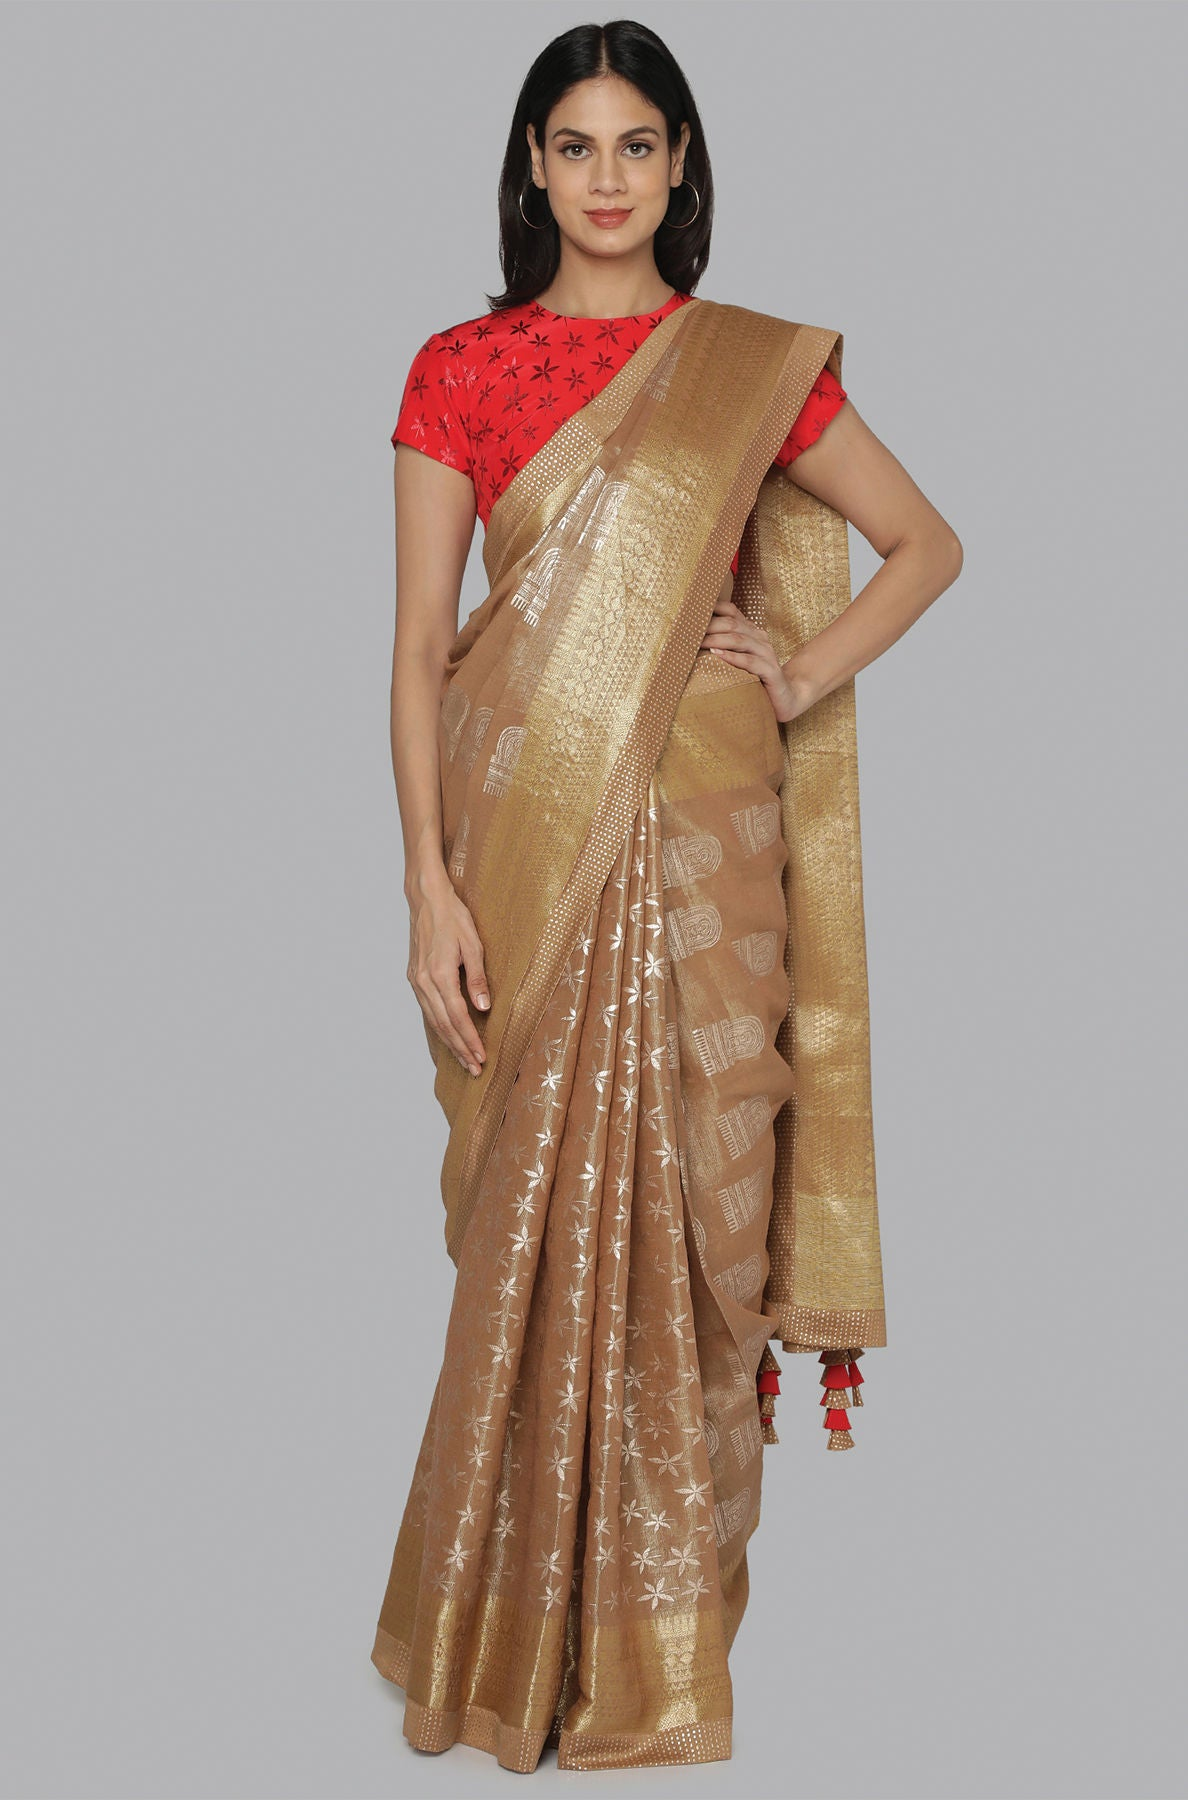 BROWN STAR FLOWER AND COMB FOIL HALF AND HALF BANARSI SARI - The Grand Trunk